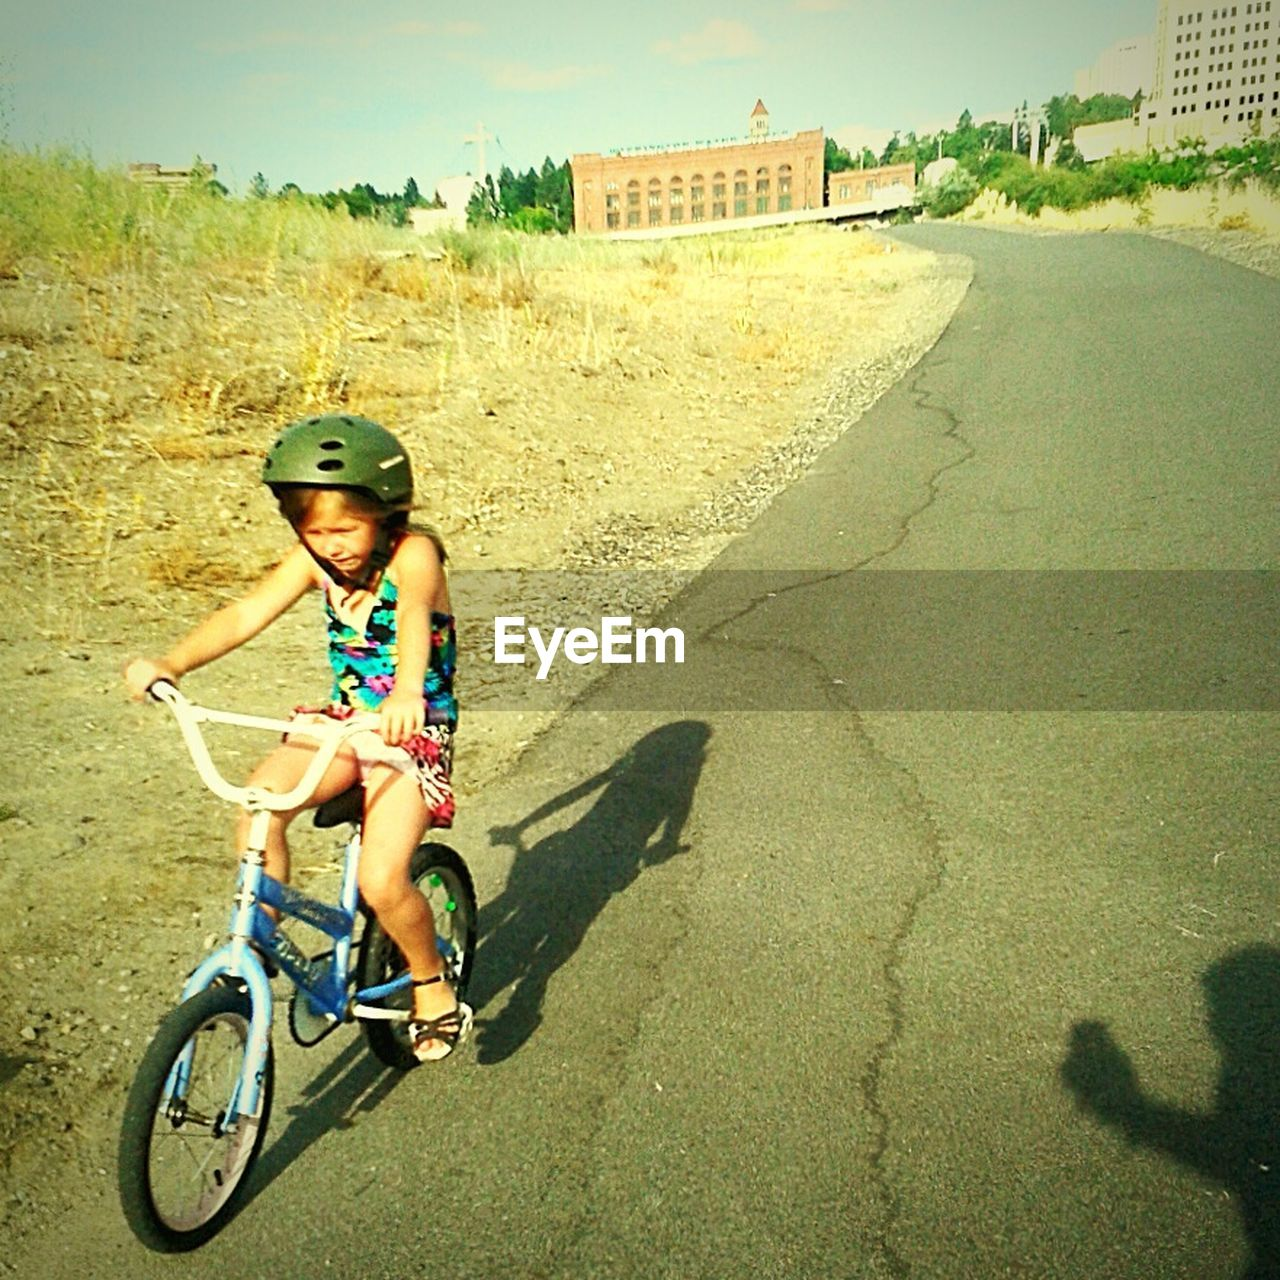 full length, shadow, sitting, one person, sunlight, riding, helmet, leisure activity, headwear, day, outdoors, childhood, architecture, real people, cycling helmet, young adult, sky, people, adult